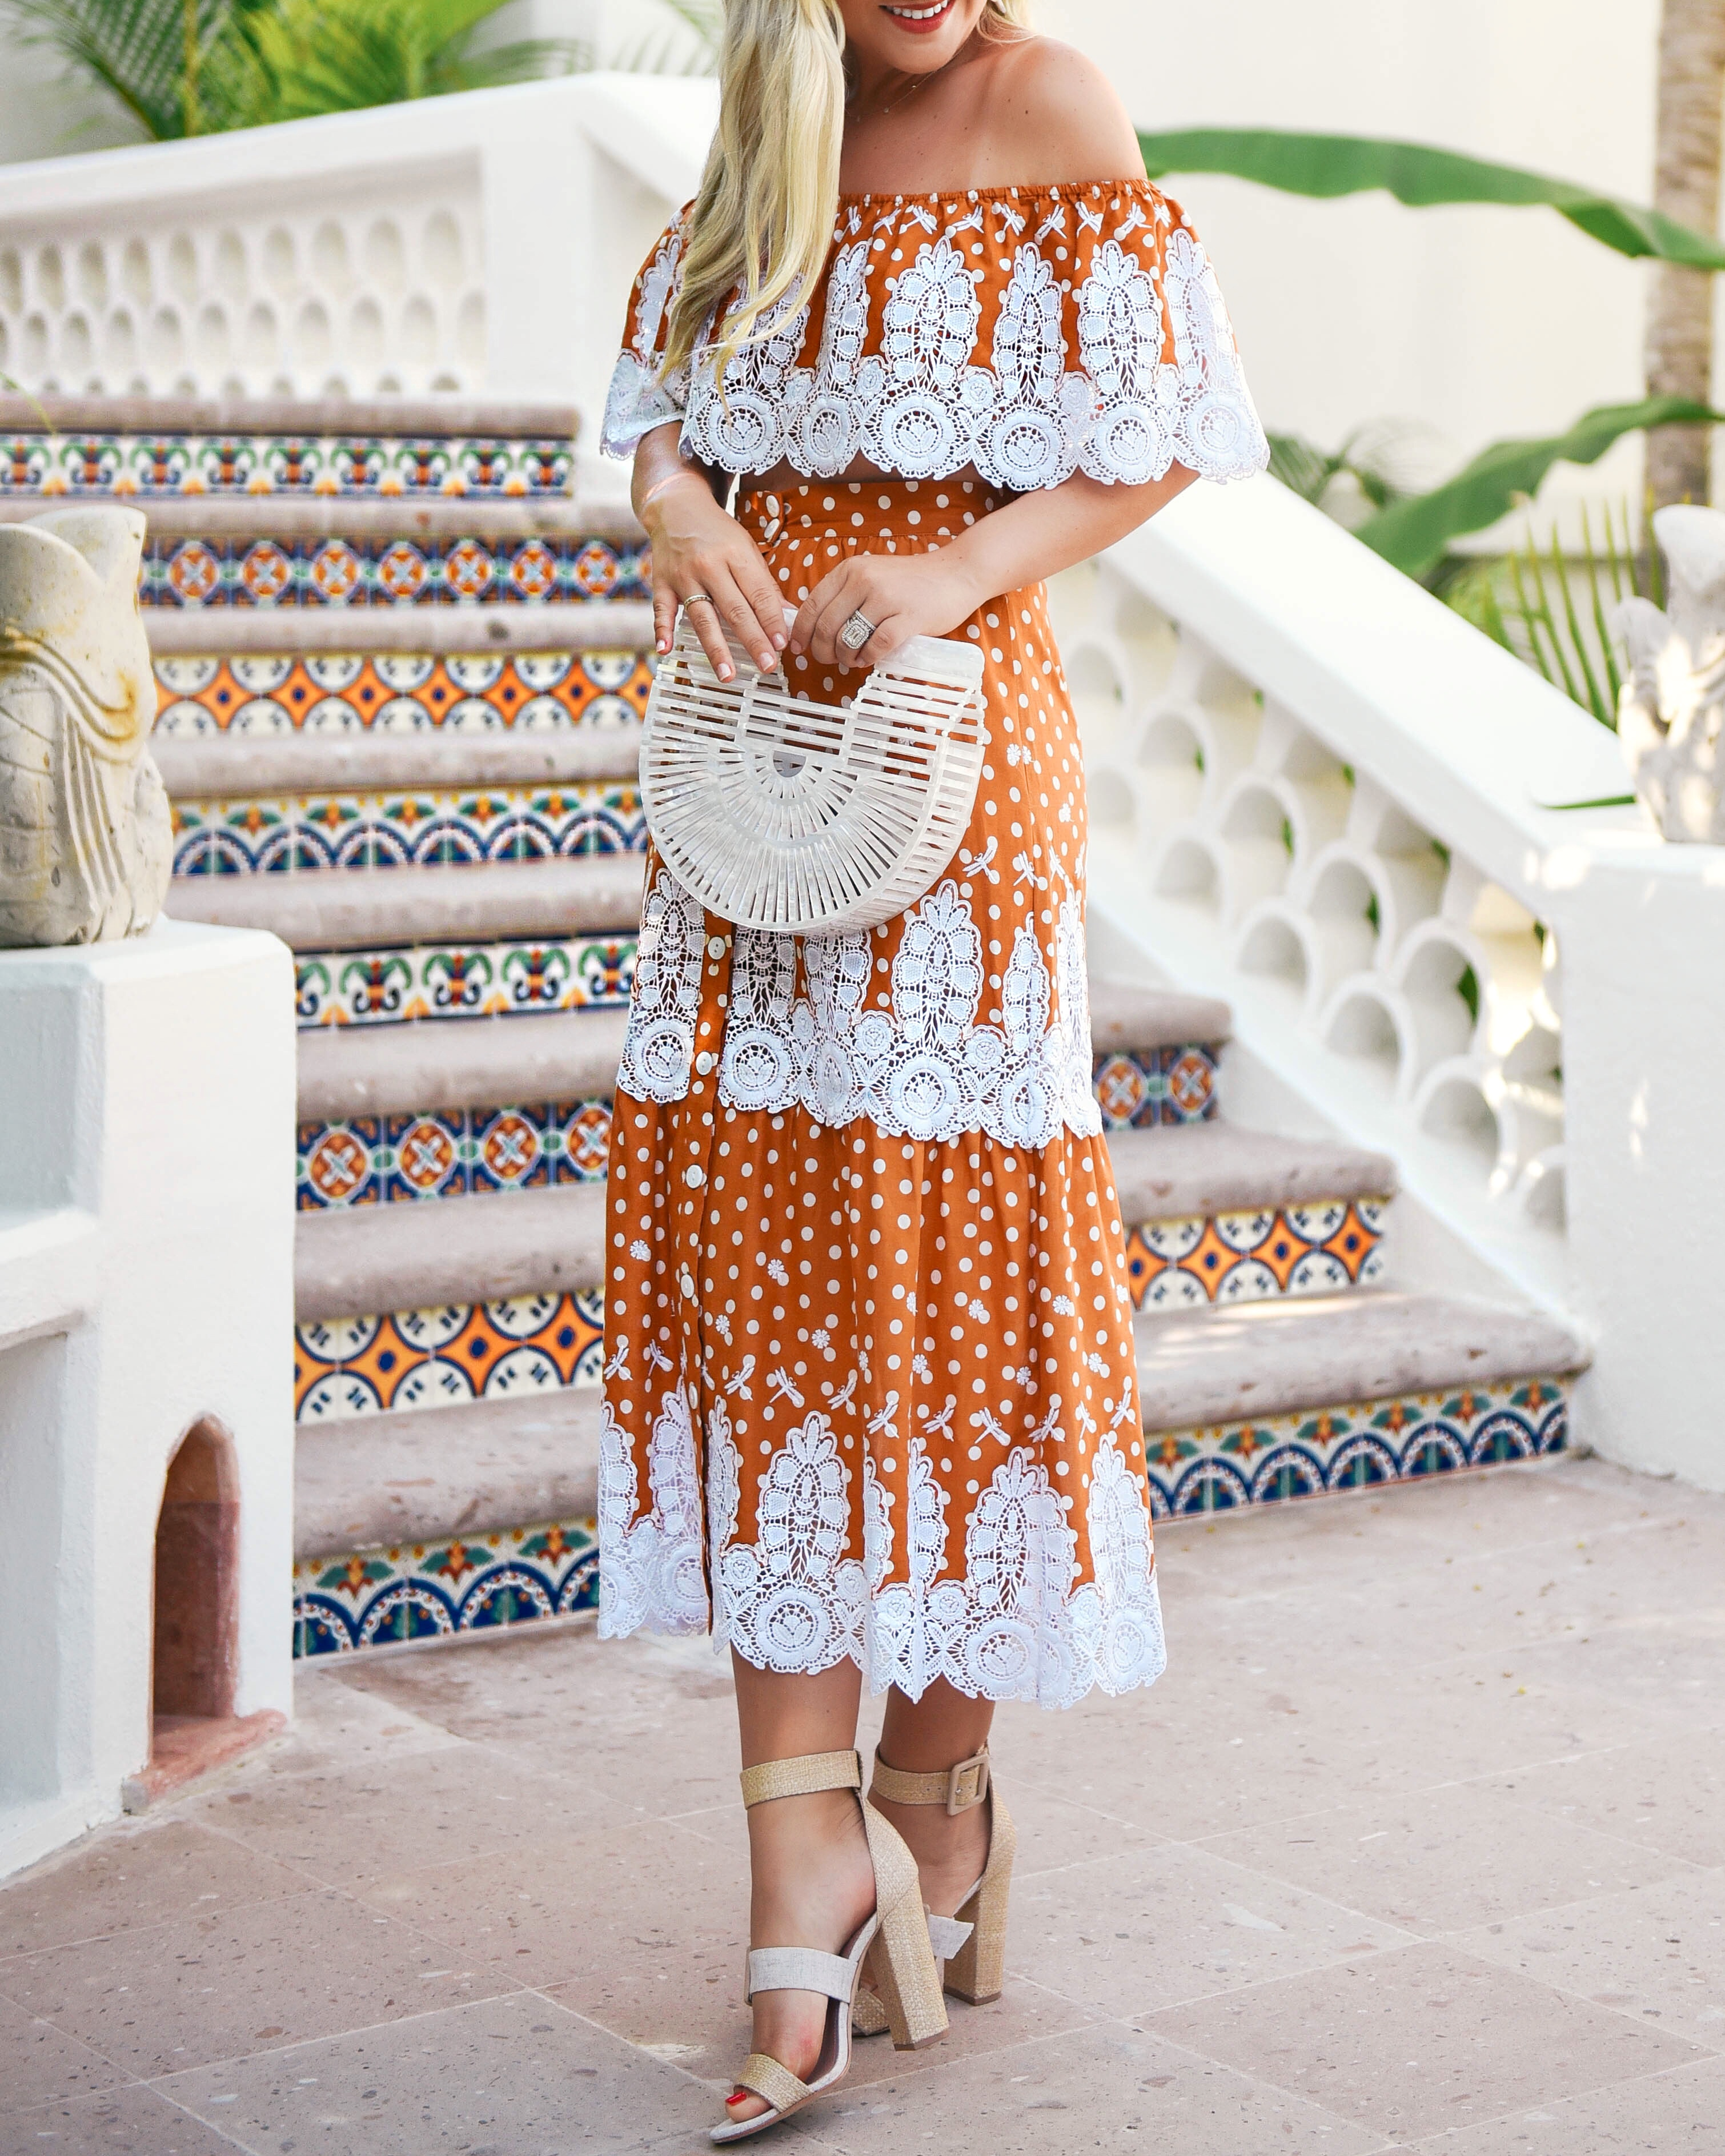 Miguelina-Shopbop-Matching-Set-Lo-Murphy-Miguelina-Orange-Set-Lace-Dress-1